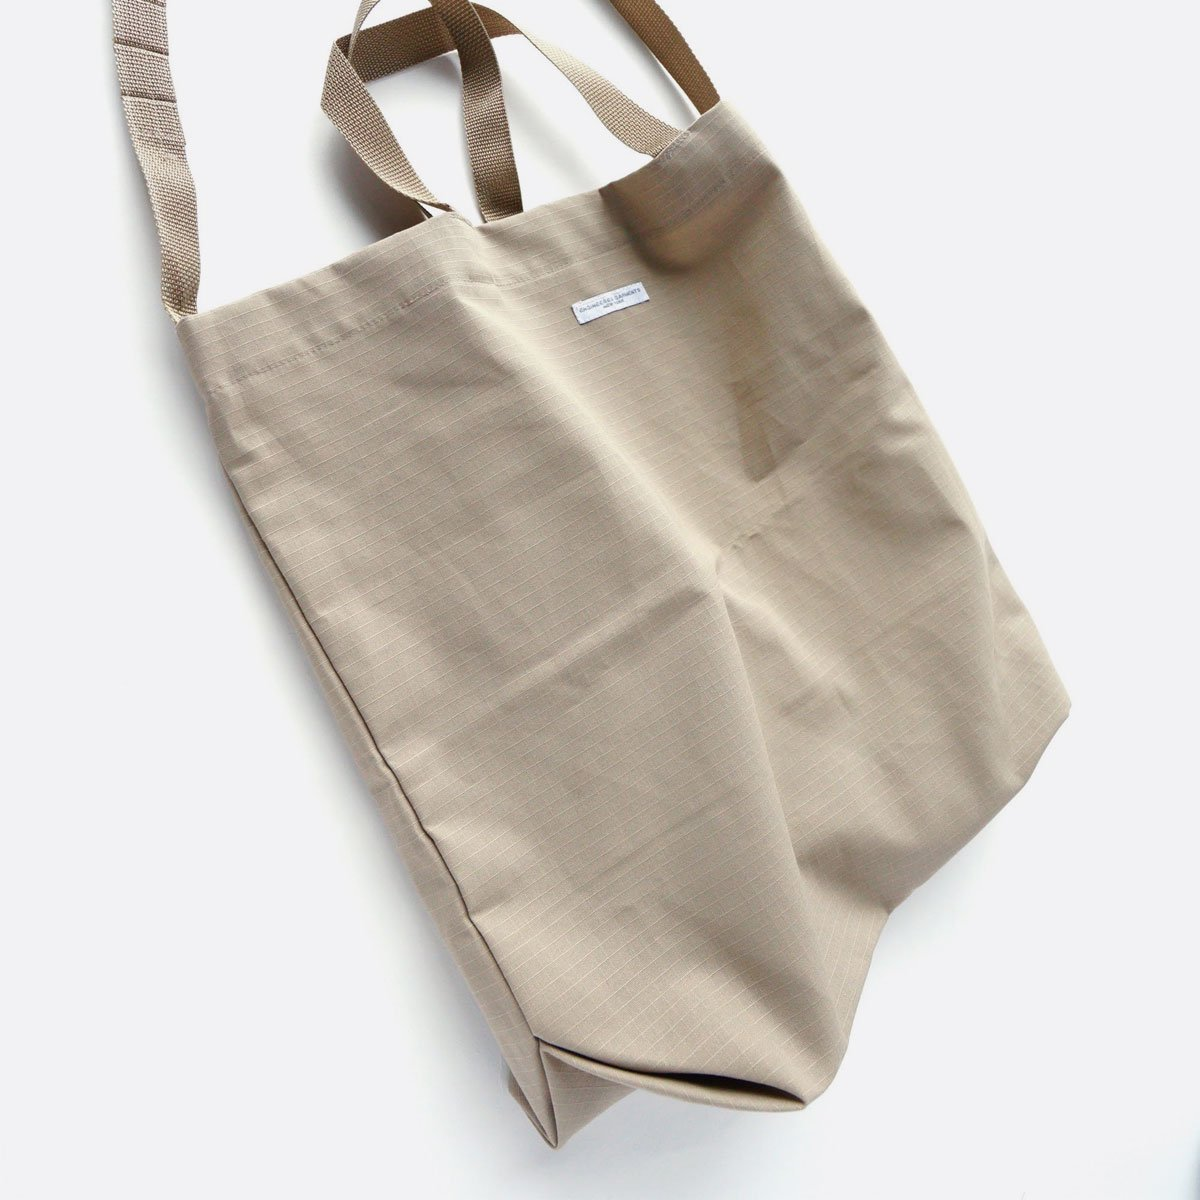 Engineered Garments Carry All Tote -Cotton Ripstop (Khaki)4